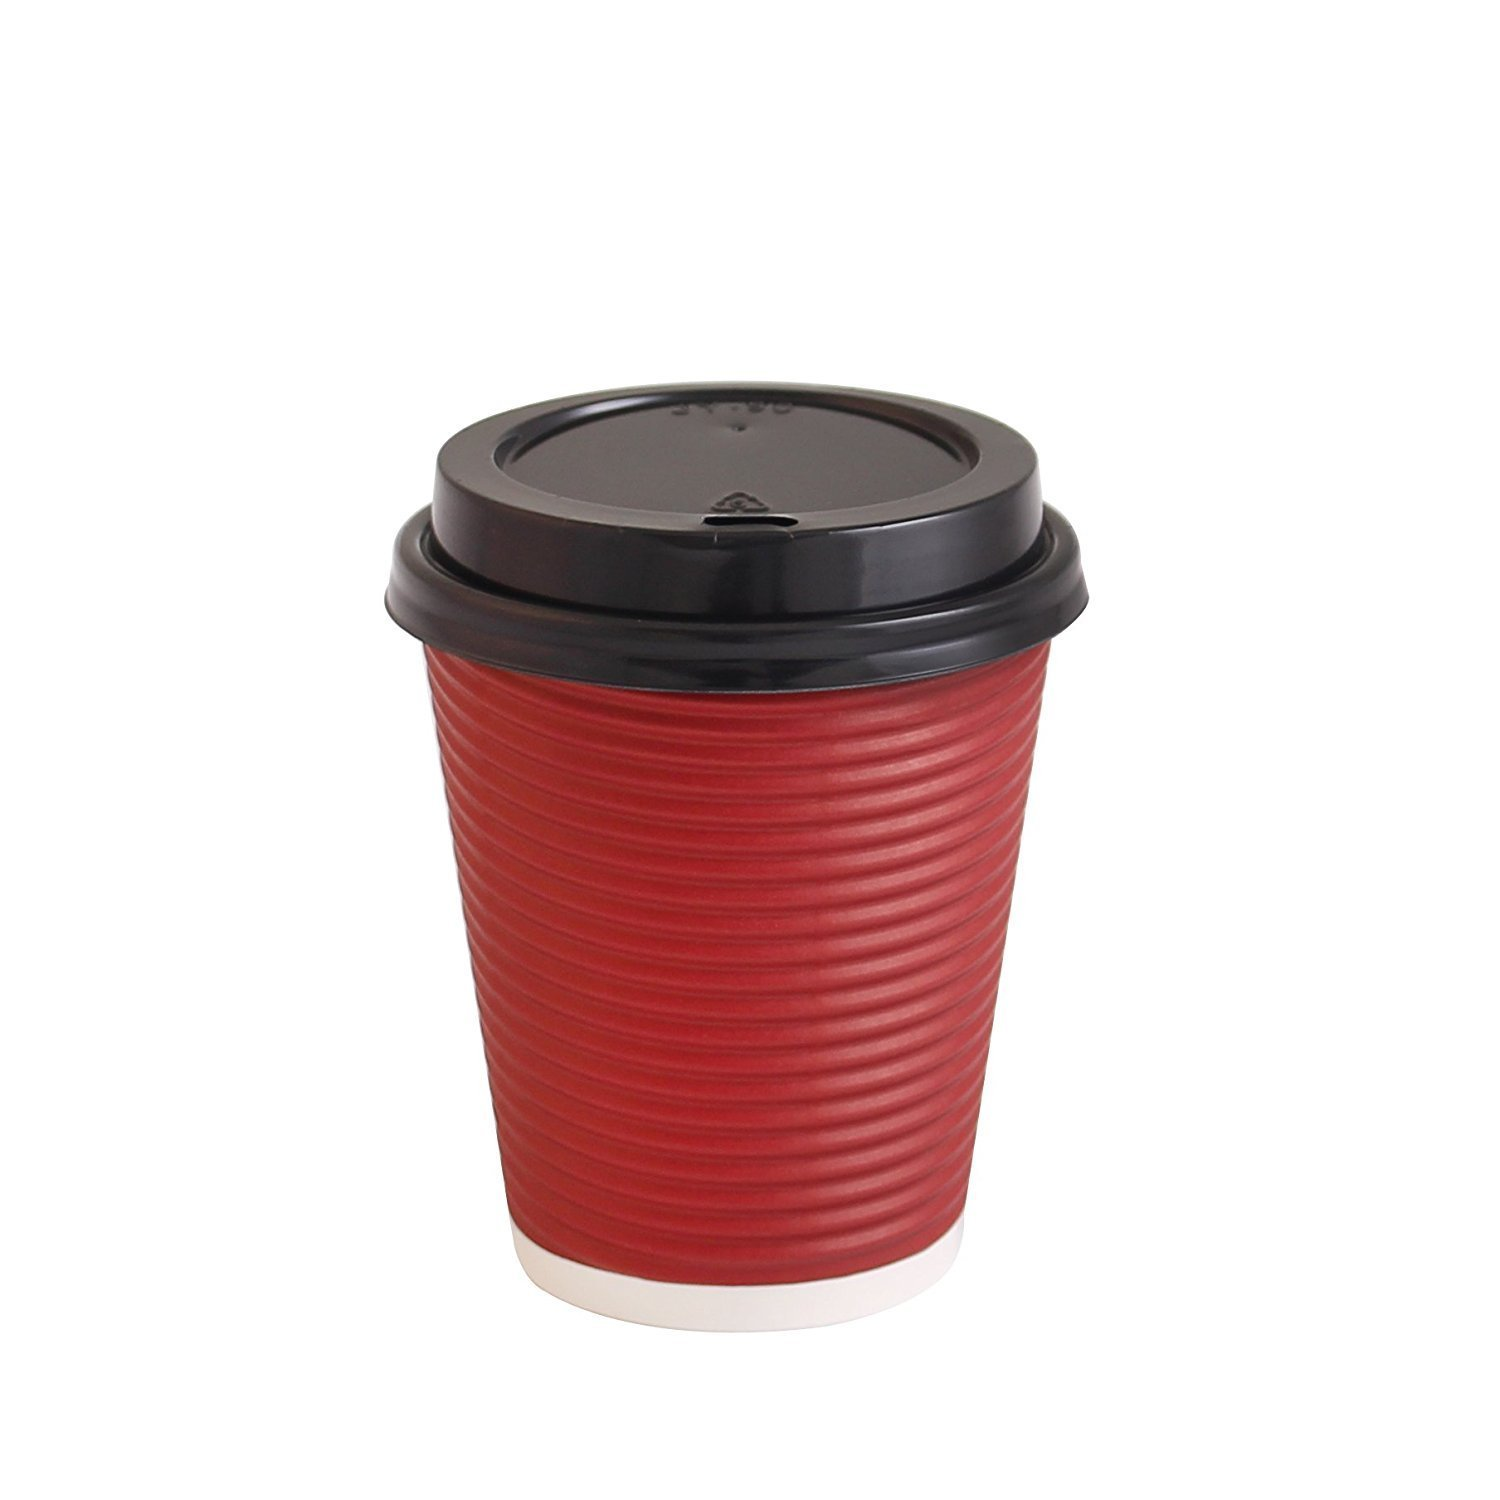 PARTY BARGAINS Best Disposable Coffee Togo Cups with Lids | Premium Hot Paper Cup Rippled Insulation for Heat Protection Perfect for Hot Chocolate, Tea, Espresso Or Any Beverage - 12 oz | Pack of 50